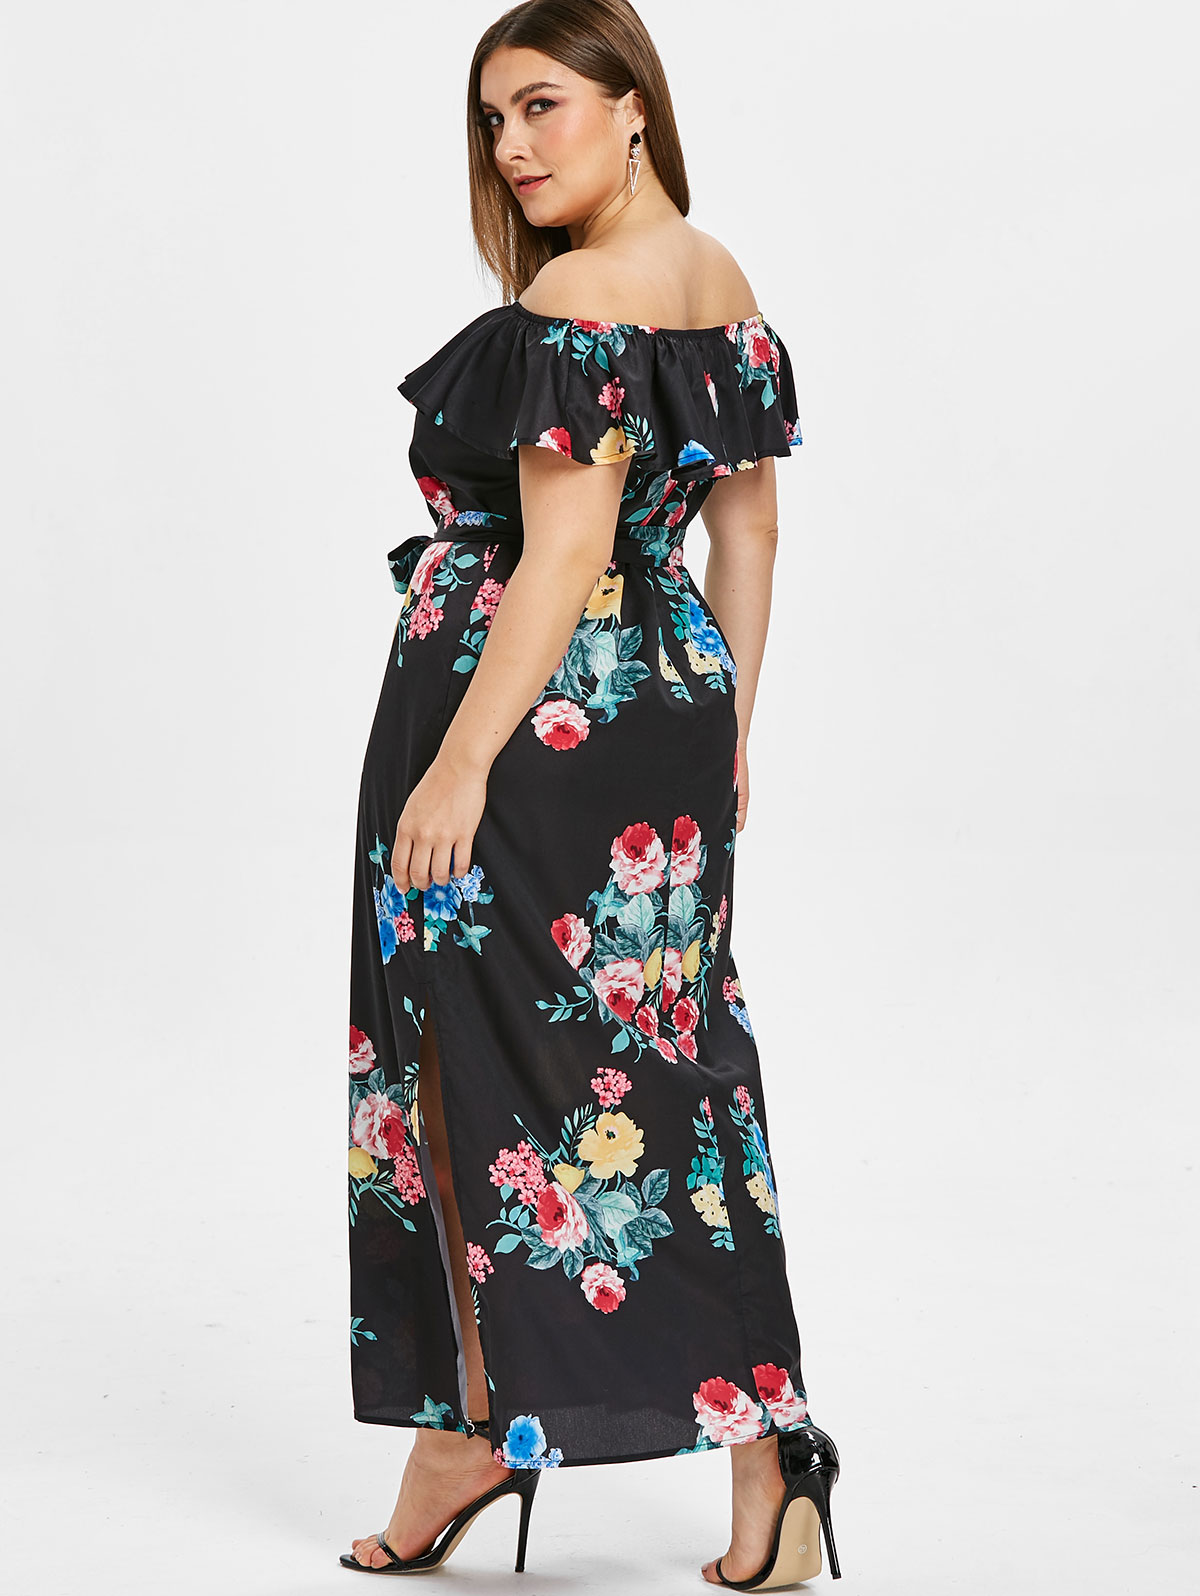 Women Plus Size Off Shoulder Flower Slit Maxi Dress Party Beach ...